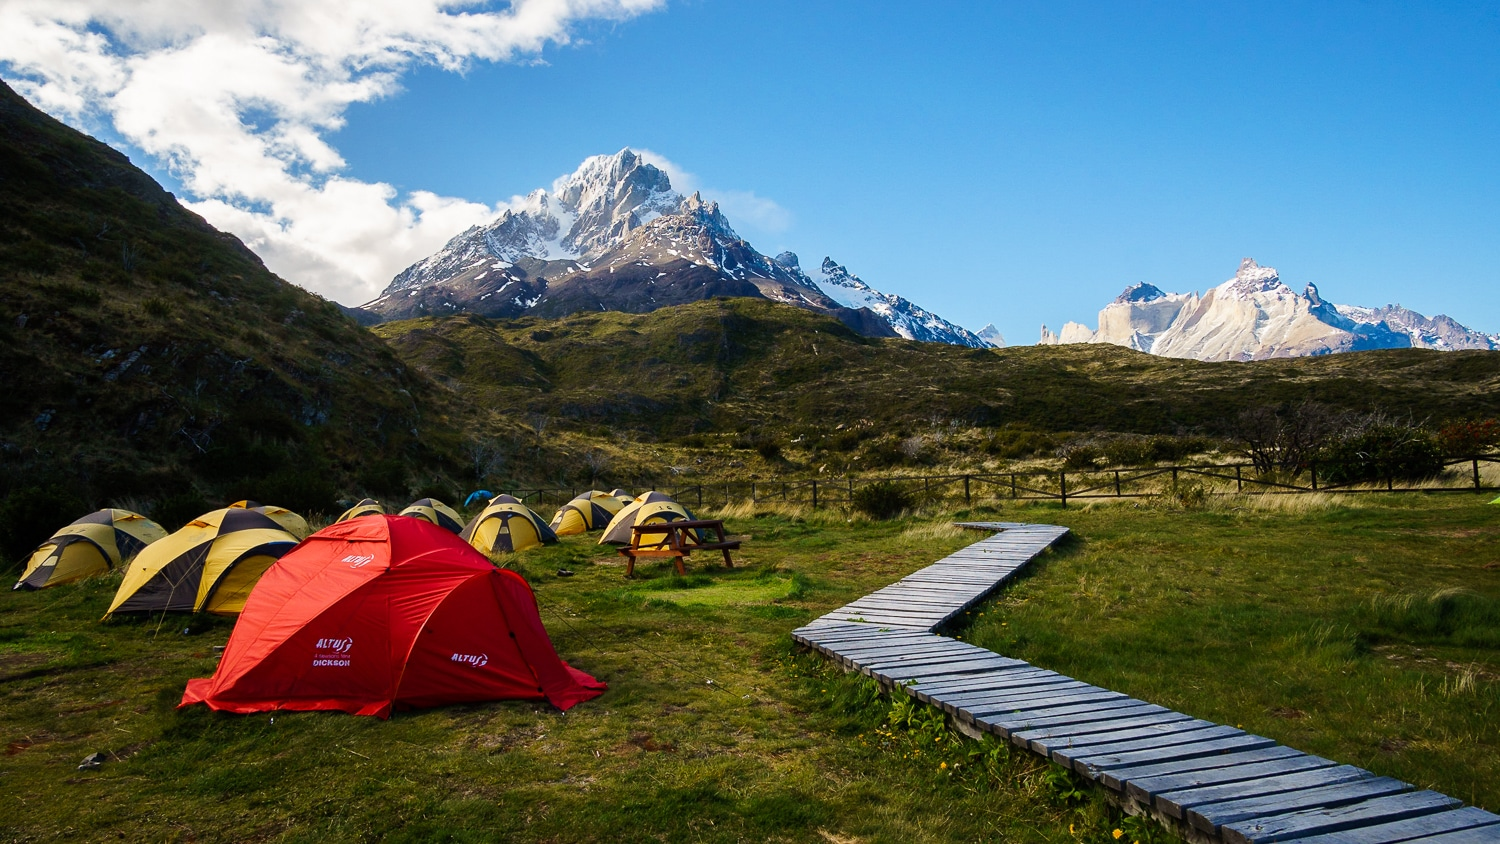 Rental Tents at Paine Grande Campground in Torres Del Paine